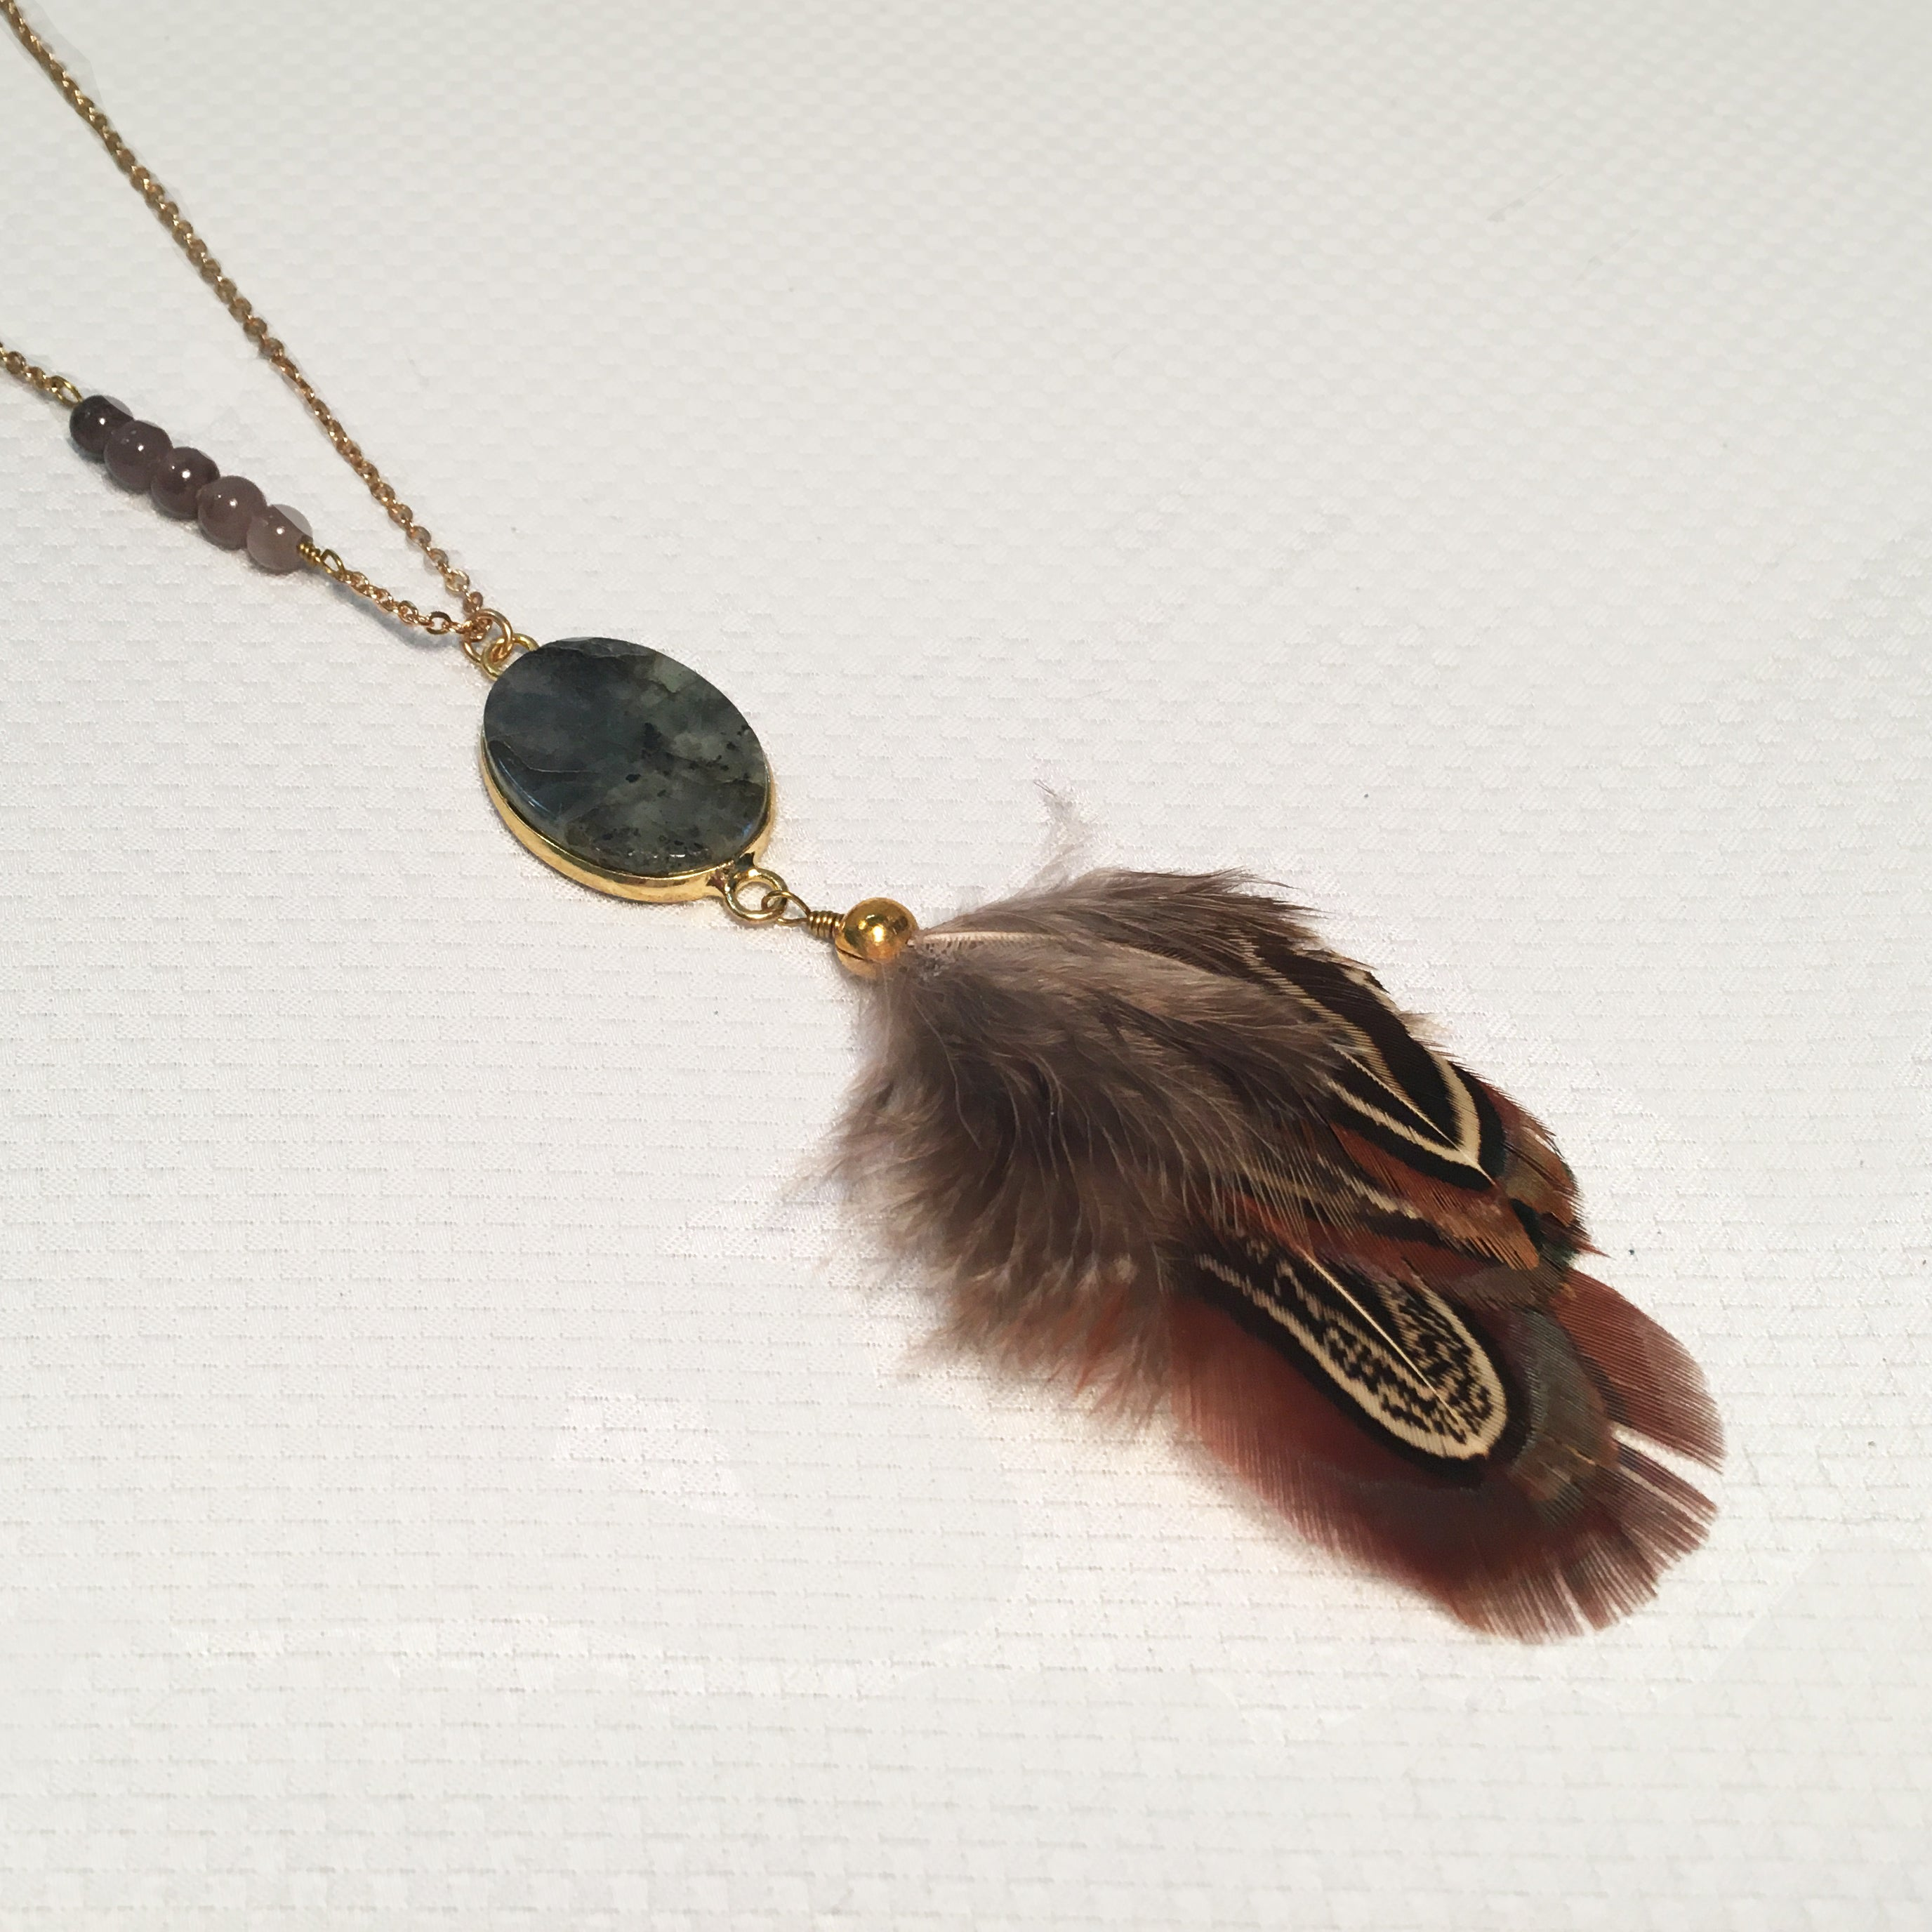 Necklace - Gold Feather Pendant